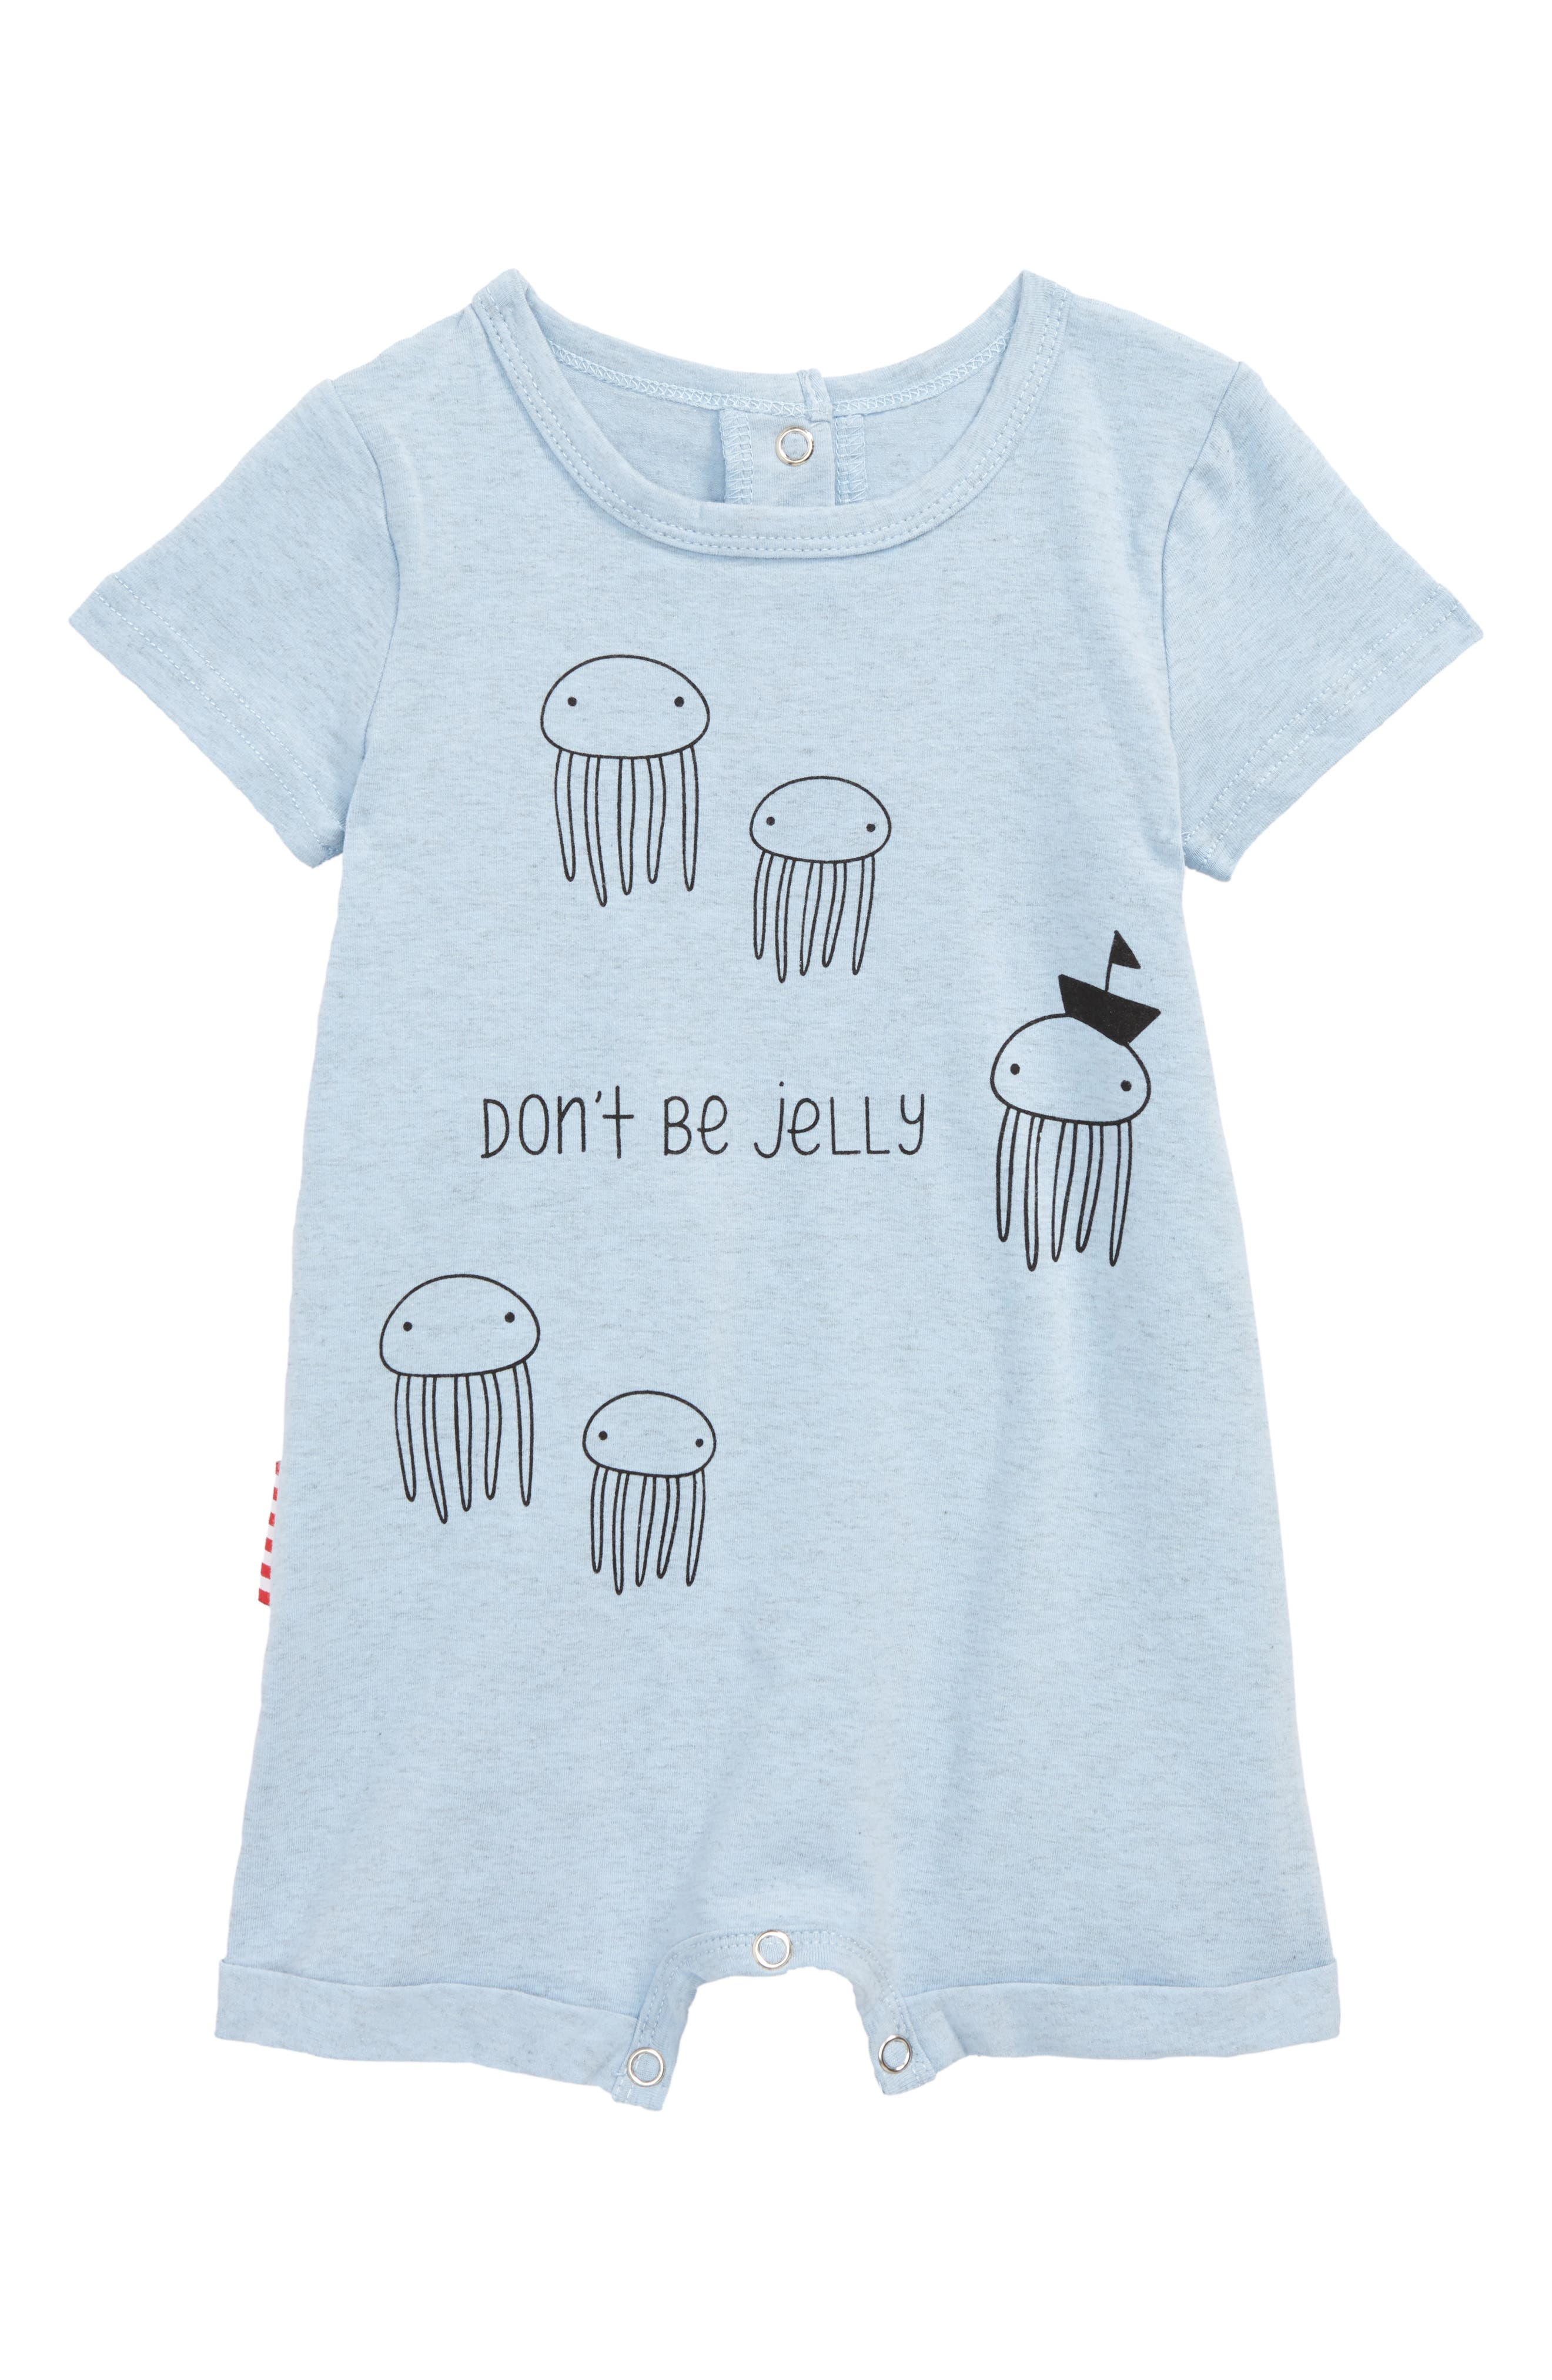 Don't Be Jelly Romper,                             Main thumbnail 1, color,                             400